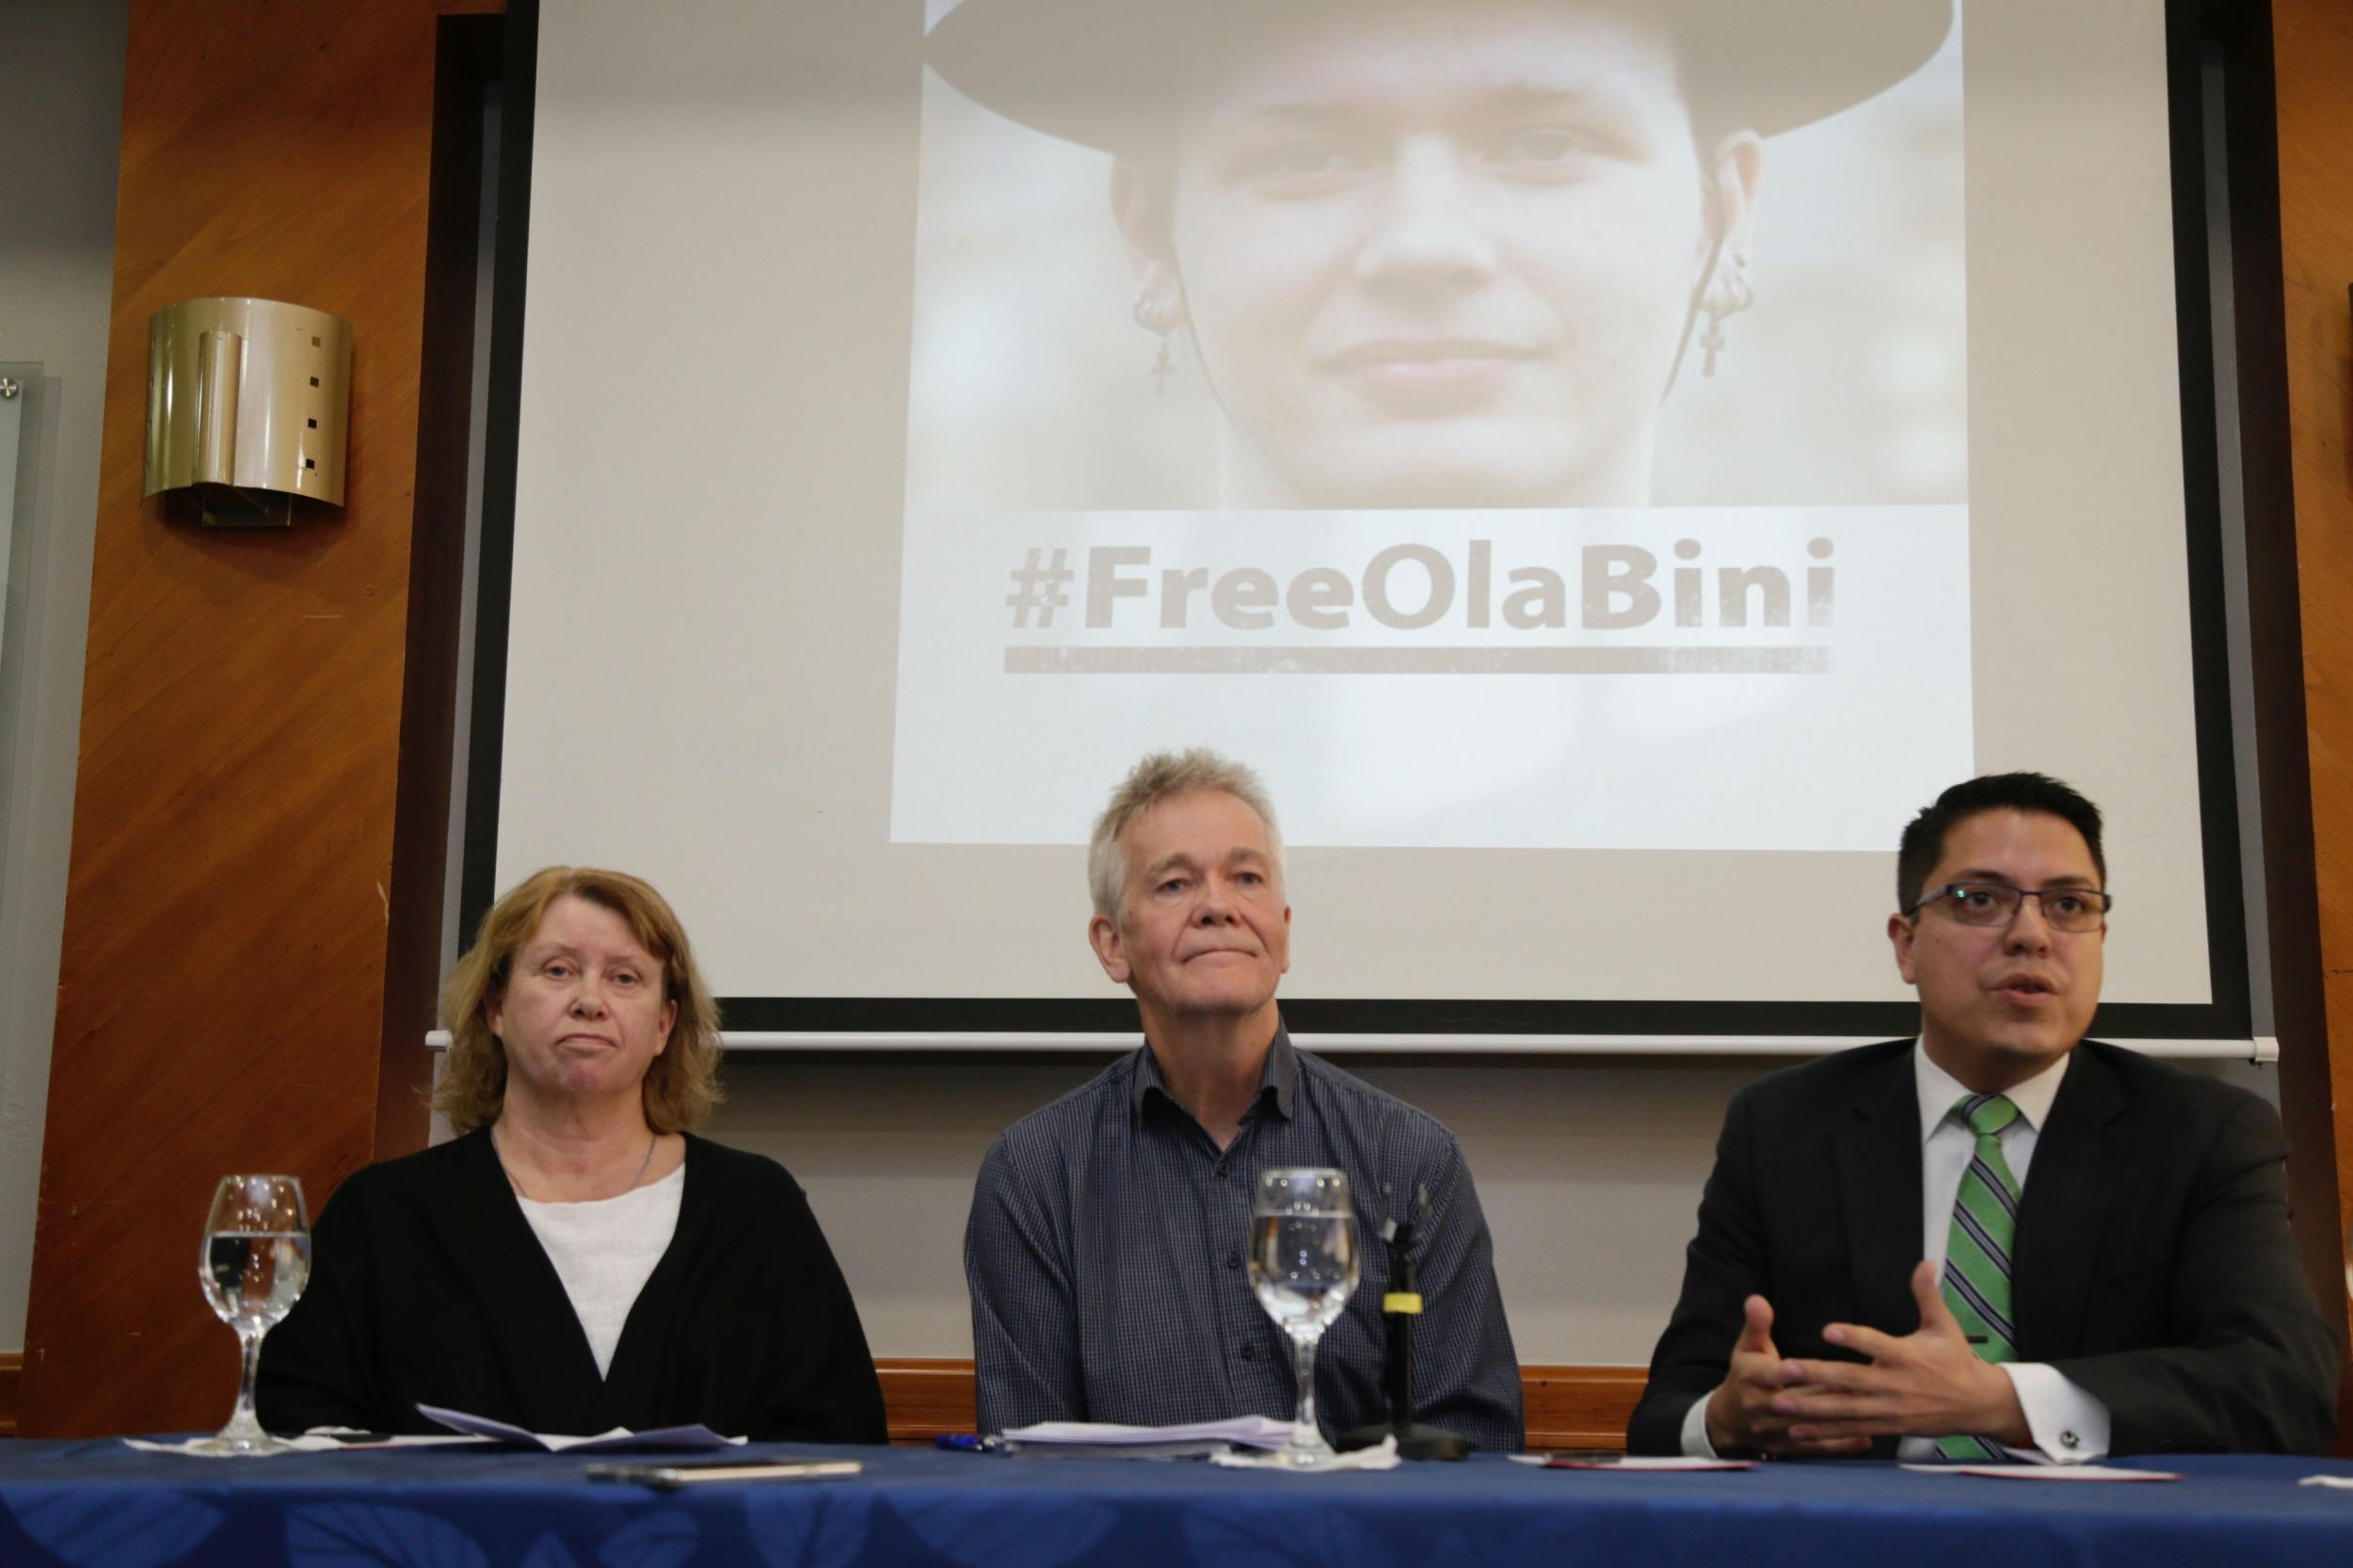 """The parents of a Swedish programmer who was an early ally of Julian Assange and Wikileaks and who has now been accused of trying to blackmail Ecuador's president, is facing threats in jail, his parents have claimed.Ola Bini, 36, was arrested last Thursday in Ecuador, hours after Mr Assange was detained by police in London who entered the Ecuadorian embassy. Mr Assange was charged with skipping bail by a London judge, while the US charged him with conspiring with whistleblower Chelsea Manning to hack a US computer. Defenders of Mr Assange say the US is trying to punish the Wikileaks founder for exposing embarrassing and damaging information about Washington's actions, including the behaviour of its troops in Iraq and Afghanistan.Prosecutors in Ecuador, have said they intend to charge Mr Bini, a longtime Wikileaks defender, with seeking to blackmail Ecuadorian president Lenin Moreno, who turned against Mr Assange and invited the British authorities to enter the embassy last week and arrest him.On Tuesday, Mr Bini's parents, Dag Gustafsson and Gorel Bini, professed their son's innocence and said they would remain in Ecuador until he was released. """"We want to say that Ola is not feeling safe, because of some threats inside,"""" Mr Gustafsson told reporters.His wife added: """"Right now, he's ok. But he's worried.""""Last week, Ecuador's interior minister Maria Paula Romo, told local media the Swedish coder, who has long worked with social justice groups, had been arrested for """"investigative purposes"""".""""For several years now, one of the key members of this WikiLeaks organisation and a person close to Mr Julian Assange has lived in Ecuador, and we have sufficient evidence that he has been collaborating with the destabilisation attempts against the government,"""" she said.According to the Associated Press, she added: """"It's up to the justice system to determine if he committed a crime. But we can't allow Ecuador to become a centre for piracy and spying. That period in our history is ov"""